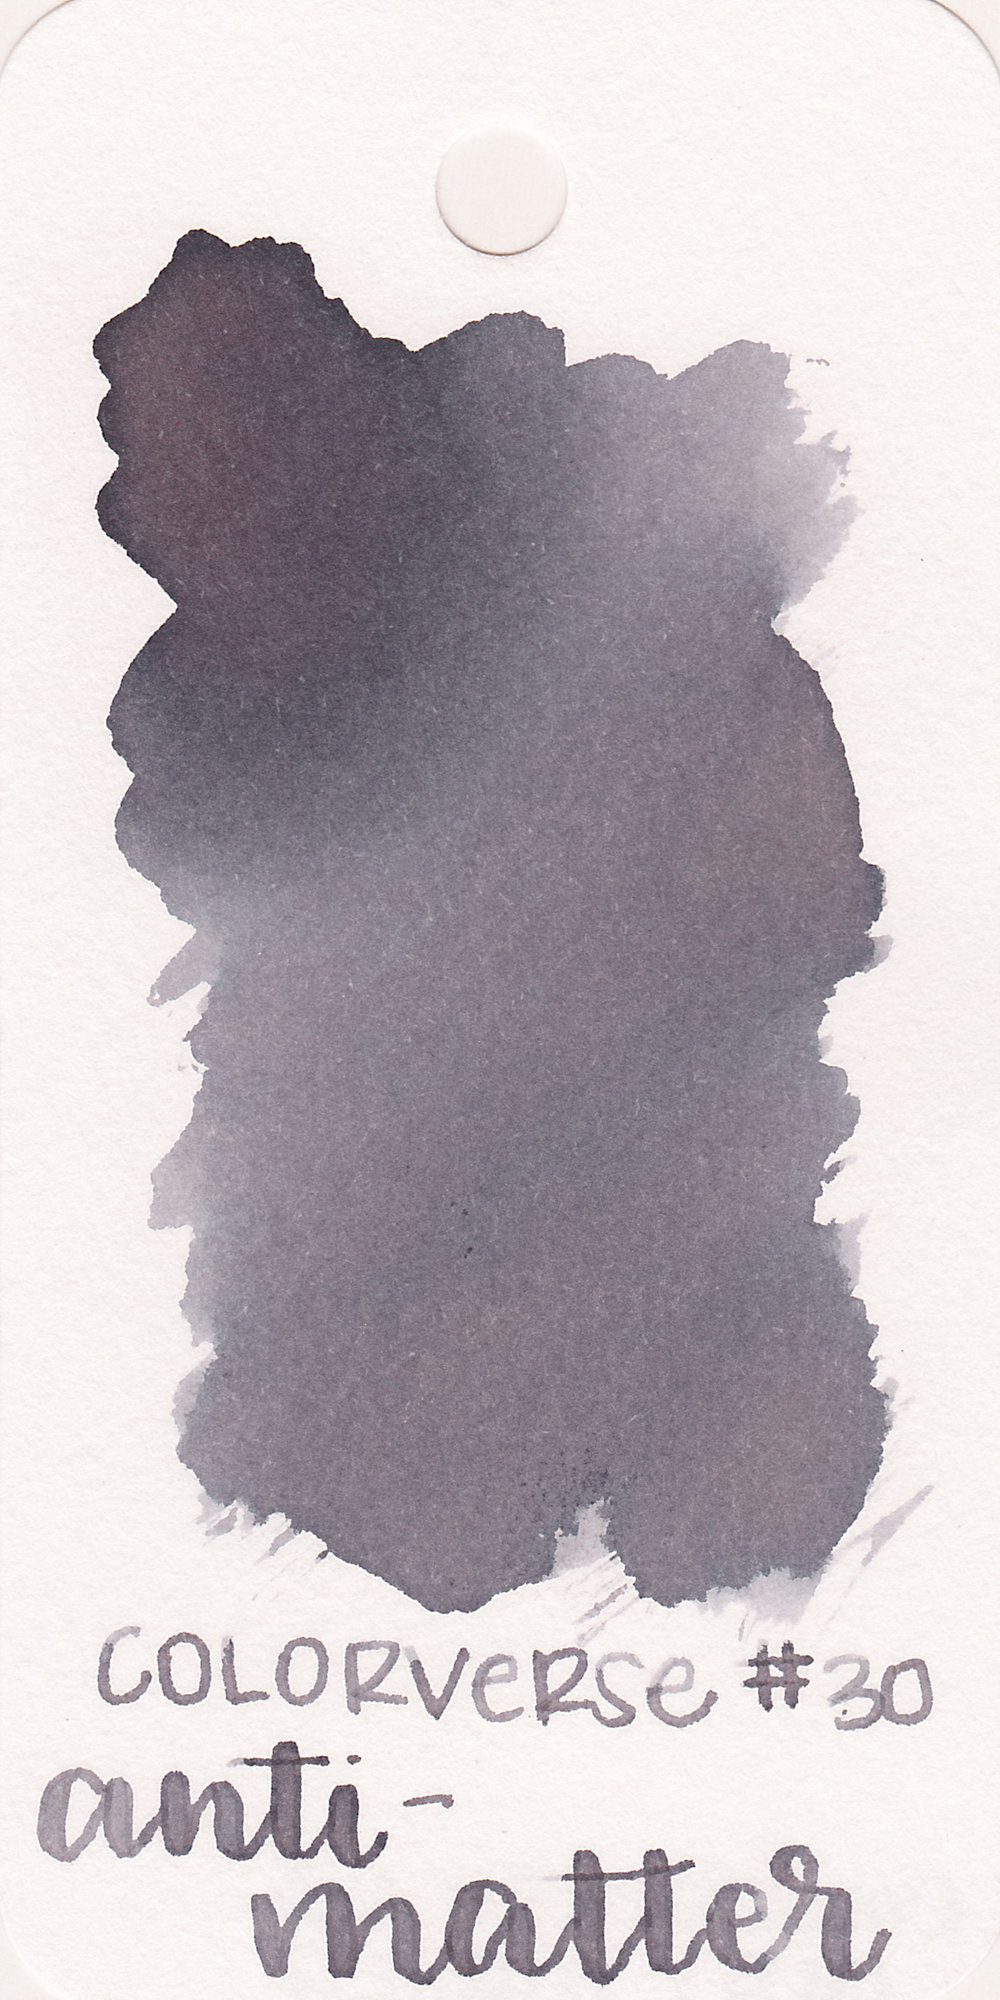 The color: - Anti-matter is a medium grey with almost a purple tone to it. It reminds me of Diamine Earl Grey.